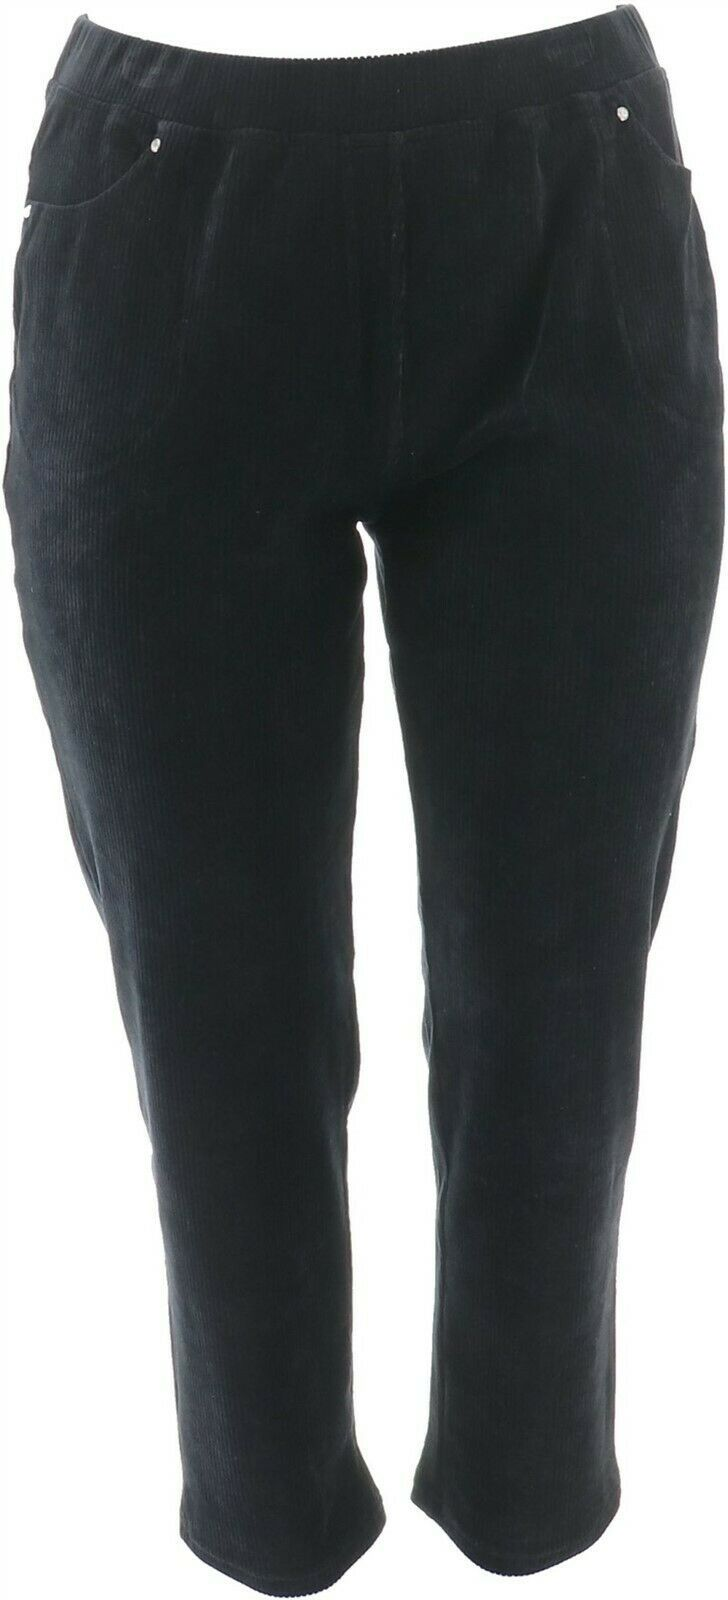 Primary image for Quacker Factory Short Knit Corduroy Pull-On Slim Leg Pant Black M NEW A270900